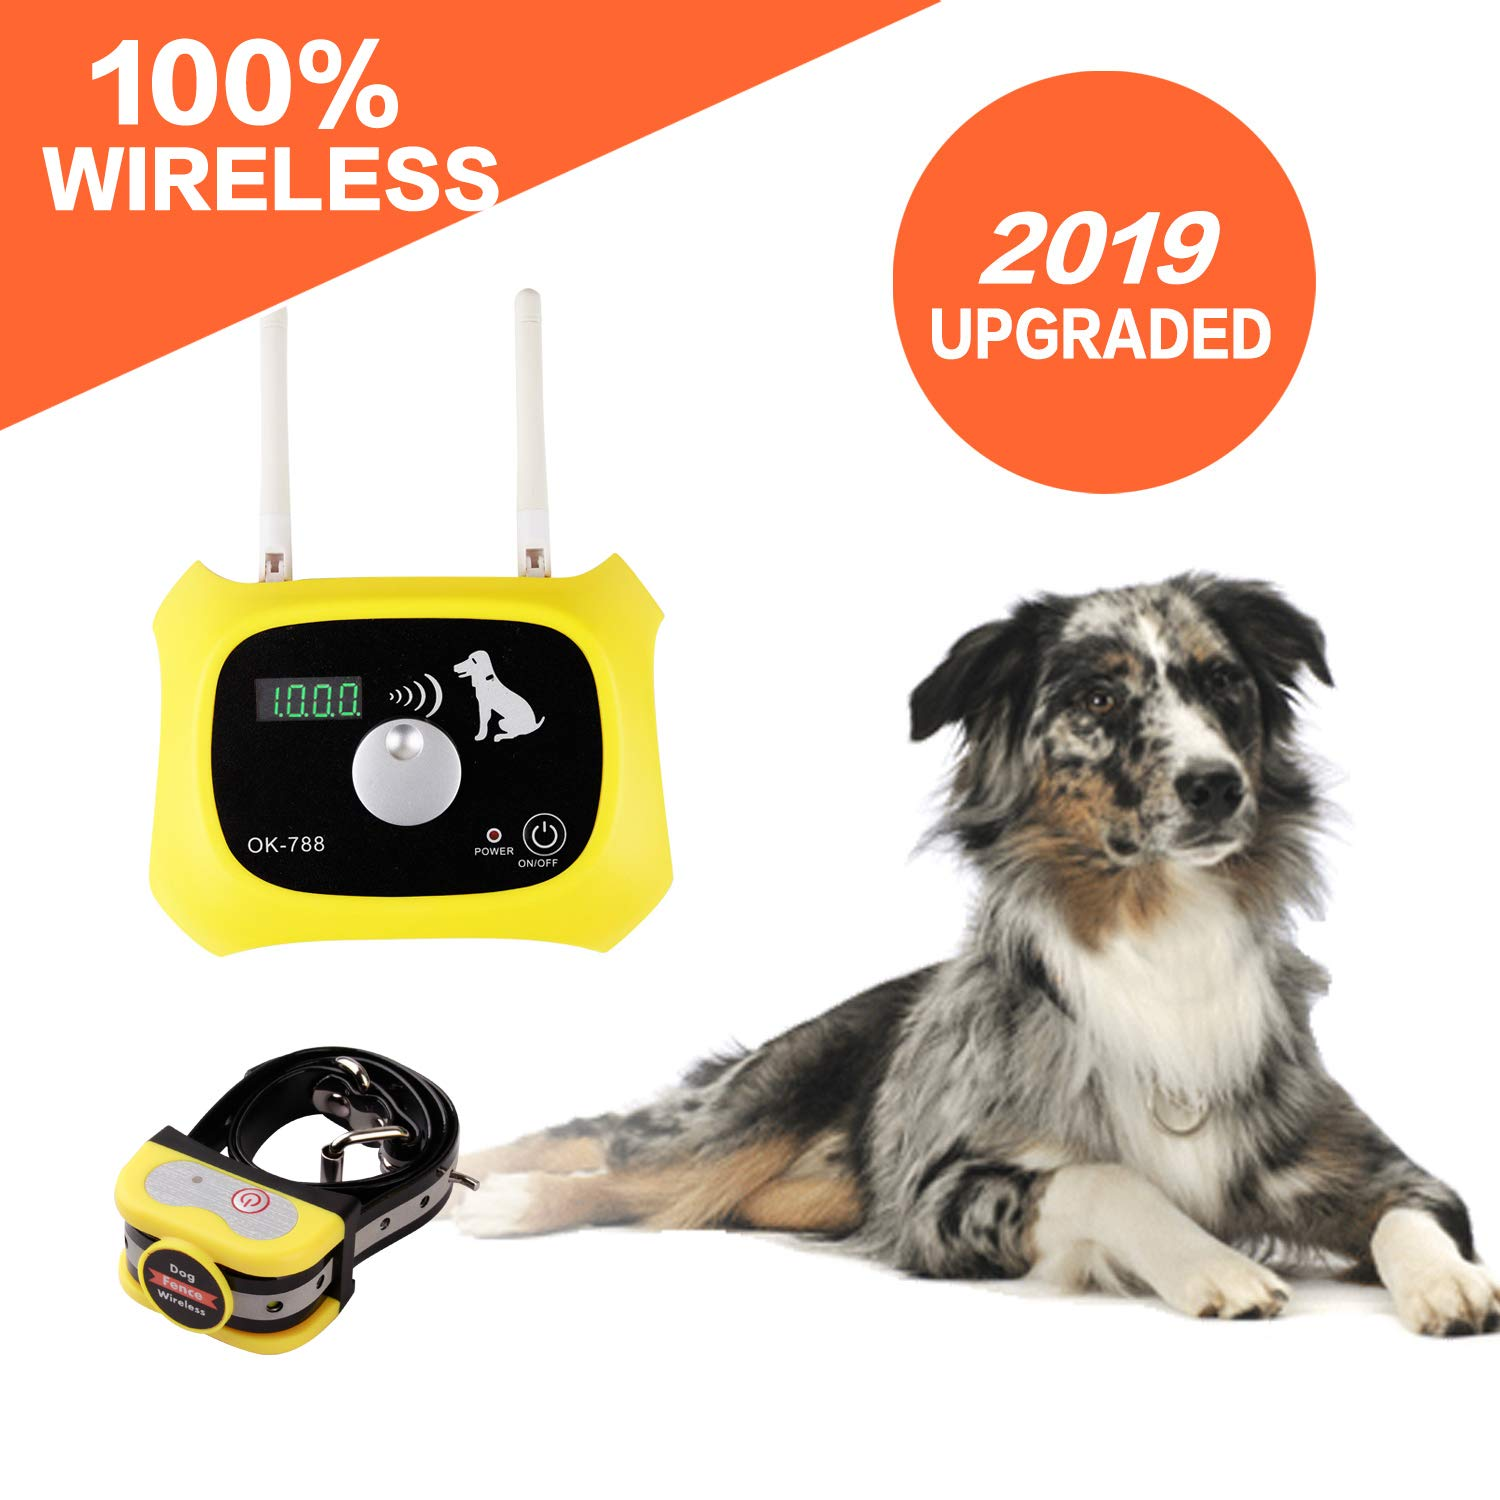 Wireless Dog Fence Electric Pet Containment System, Safe Effective Beep/Shock Design, Adjustable Control Range 1000 Feet & Display Distance, Rechargeable Waterproof Collar Receiver (1 Dog System)